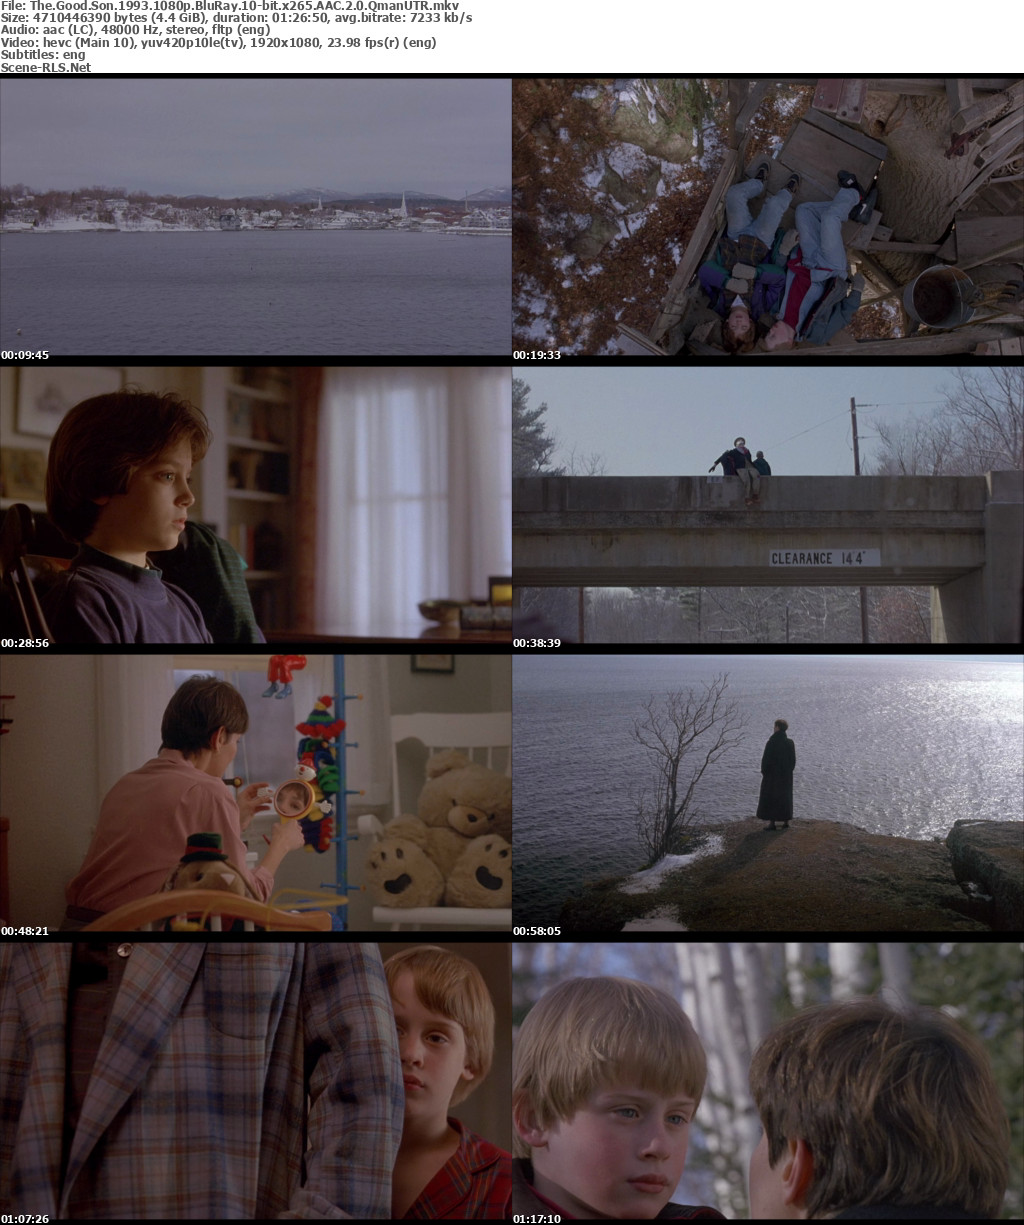 The Good Son 1993 1080p BluRay x265 HEVC 10bit AAC 2 0 Qman-UTR